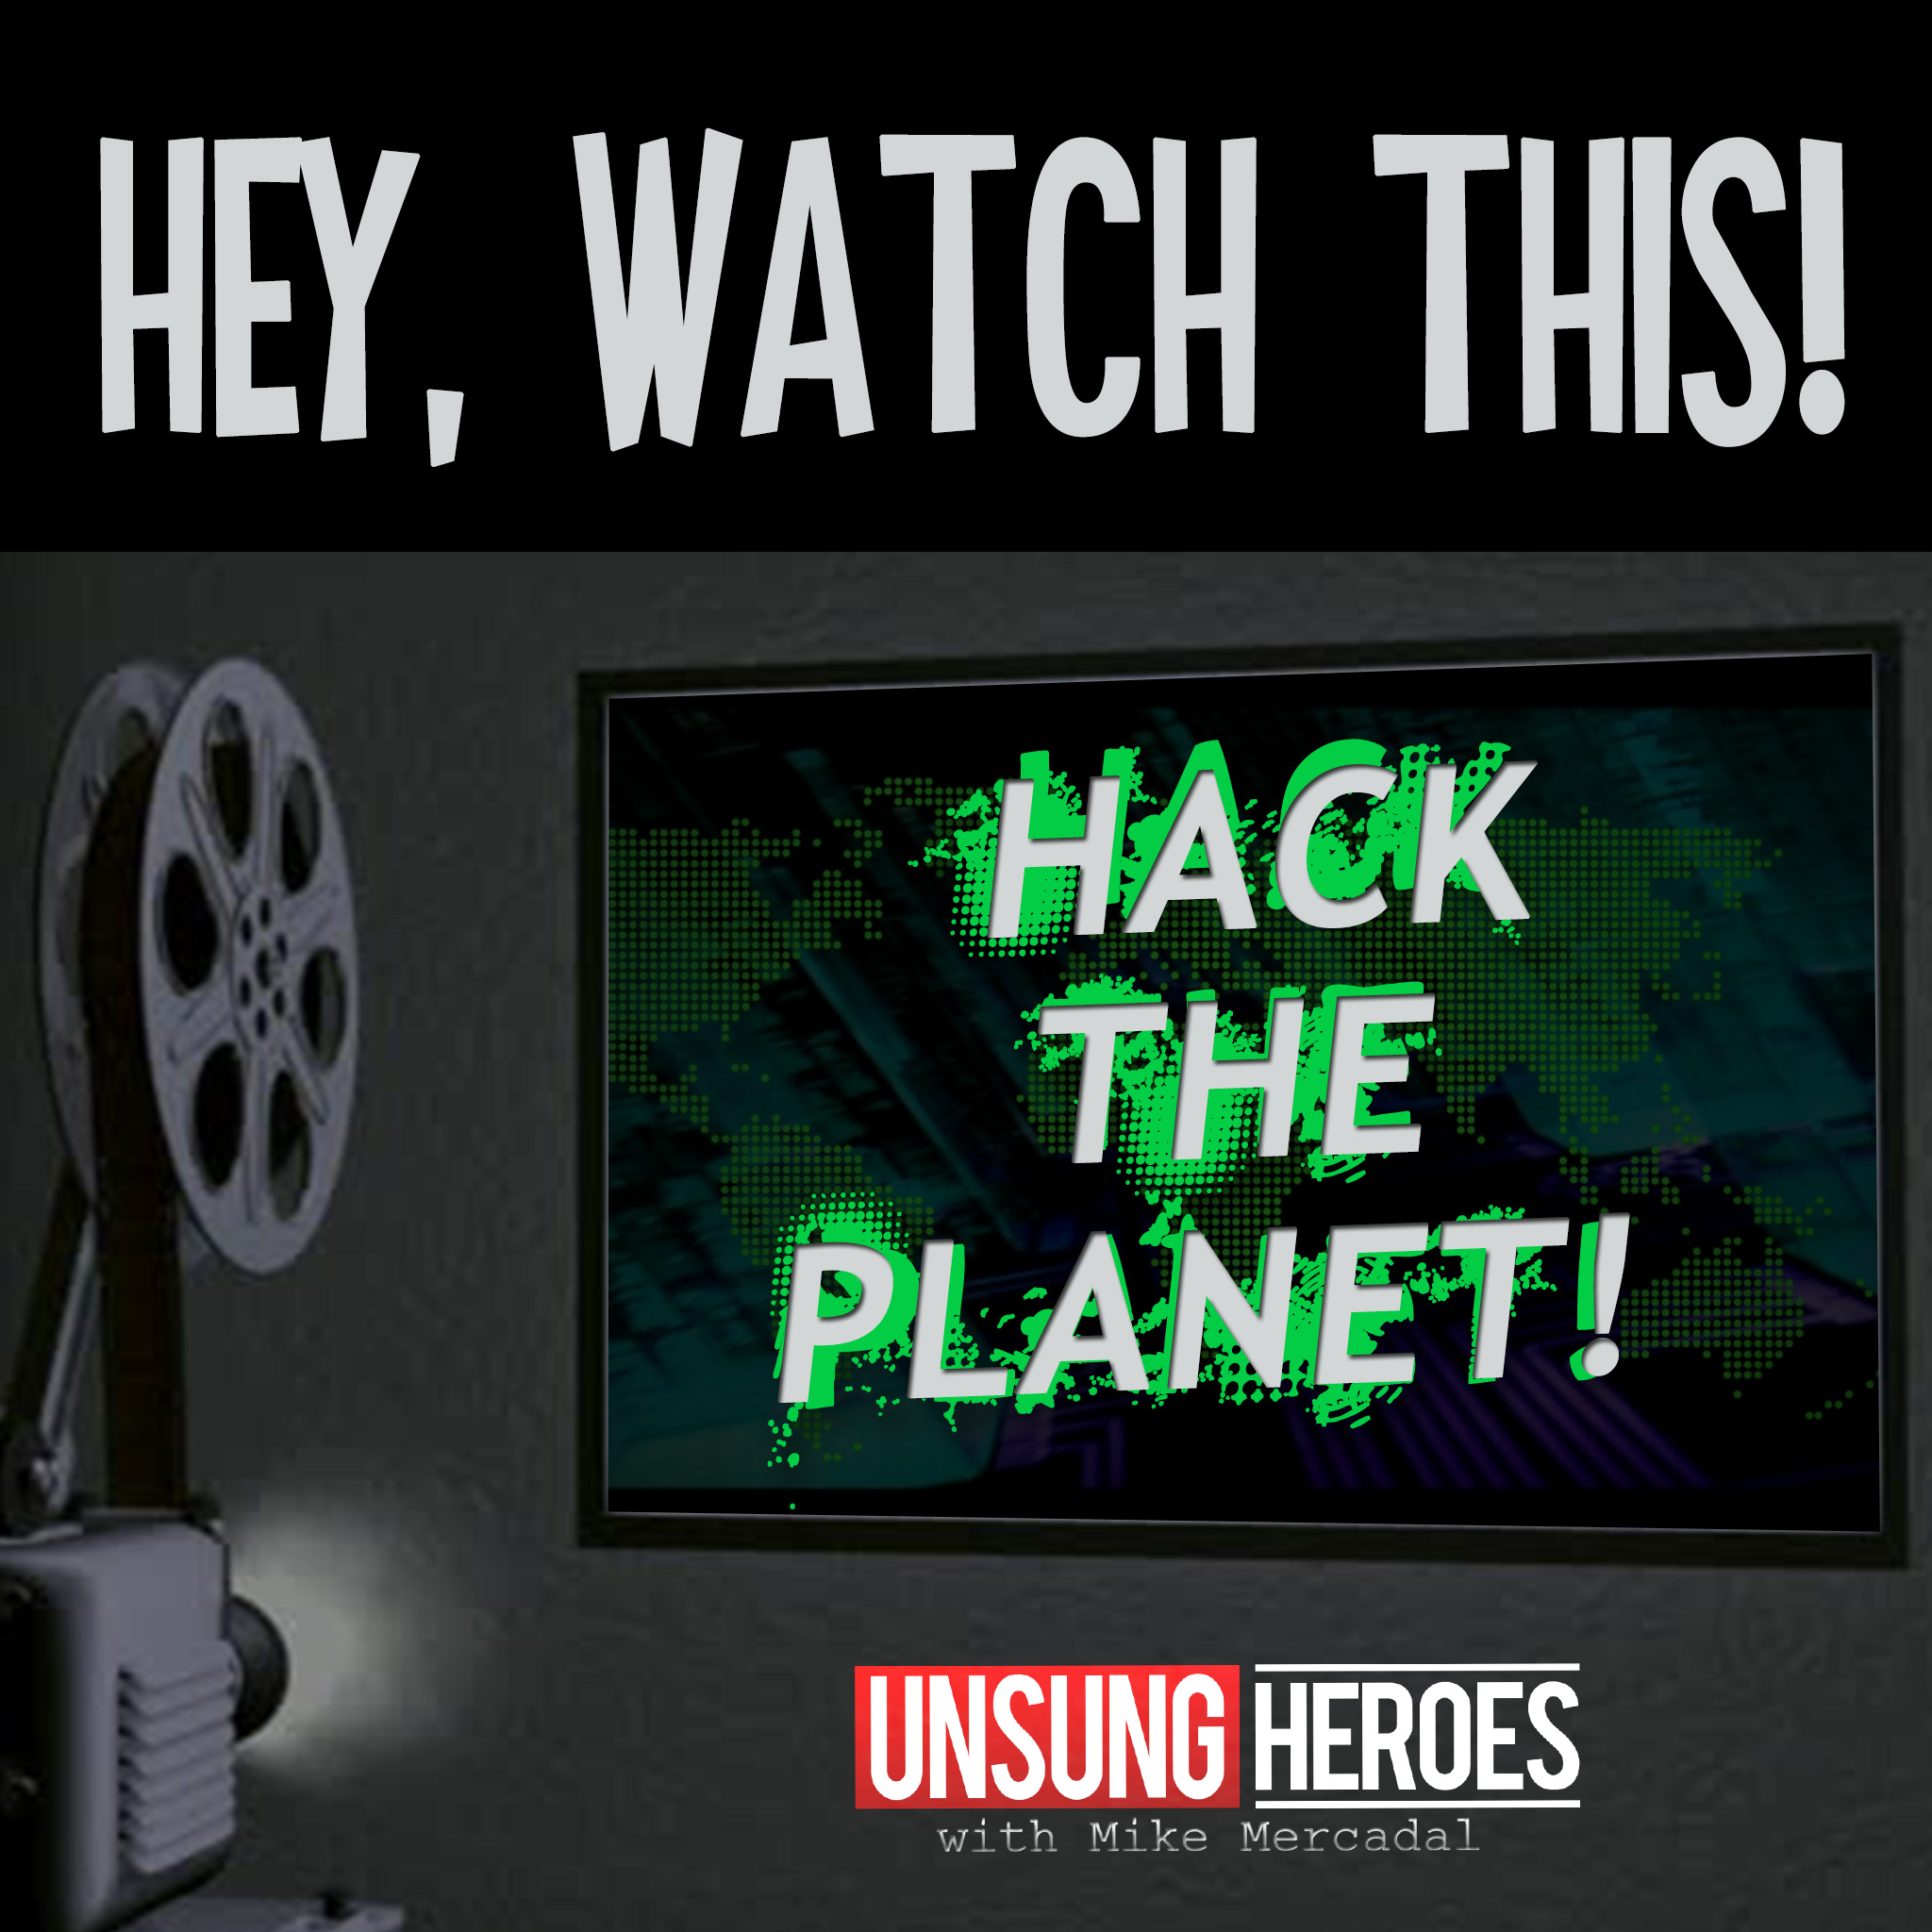 Hey Watch This: HACK THE PLANET! - 6/6/2019 - HWT002